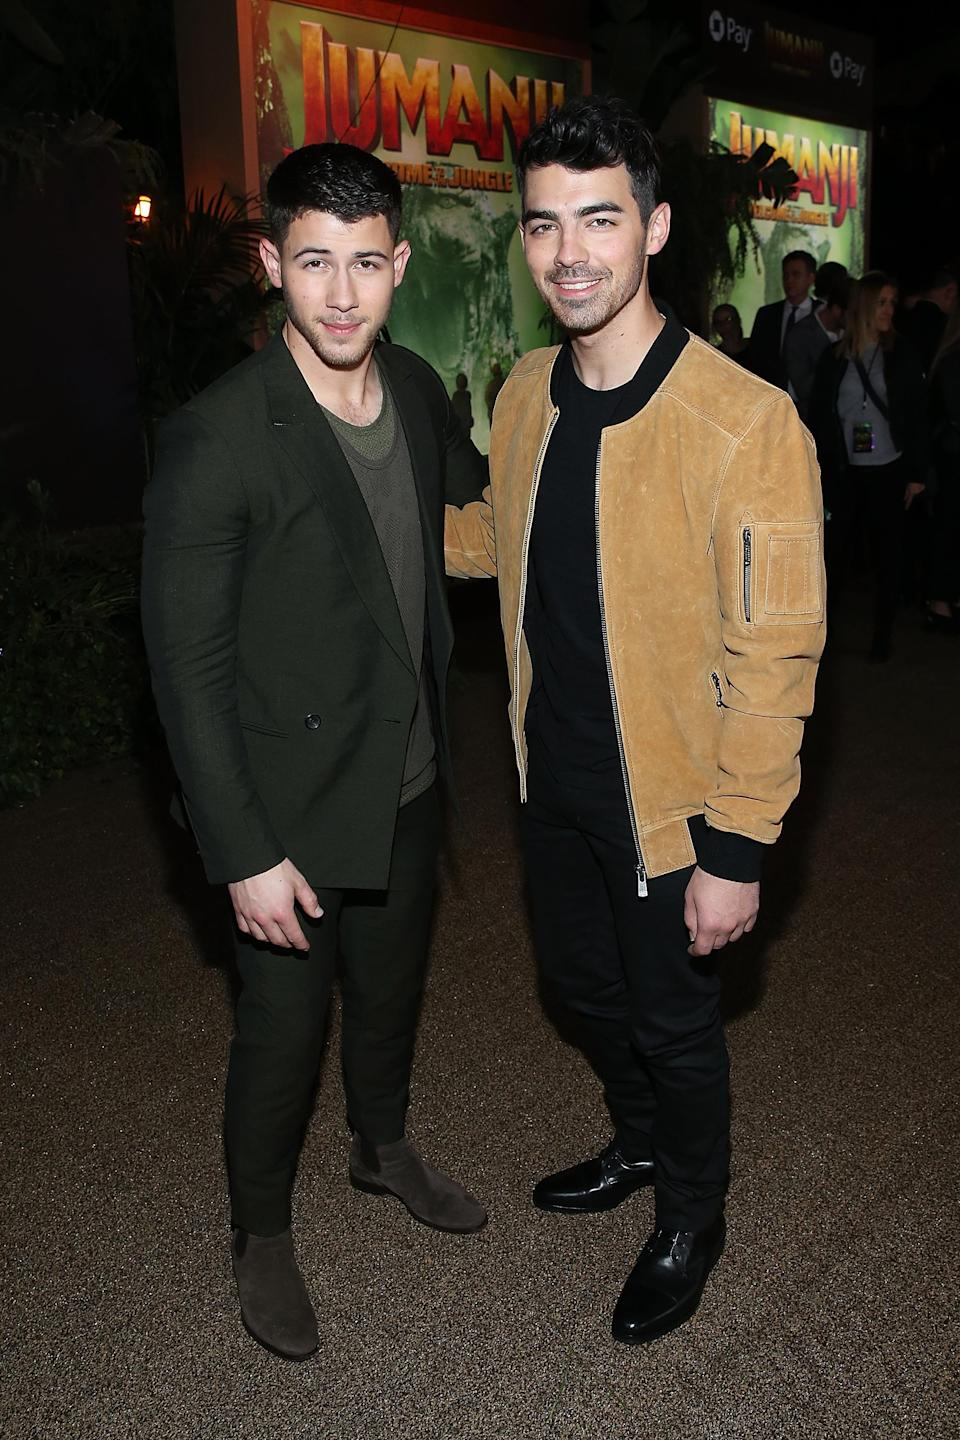 Nick Jonas was joined by his brother Joe, who recently became engaged to Sophie Turner, at the L.A. premiere of <i>Jumanji: Welcome to the Jungle</i> on Dec. 11. (Photo: Phillip Faraone/Getty Images)